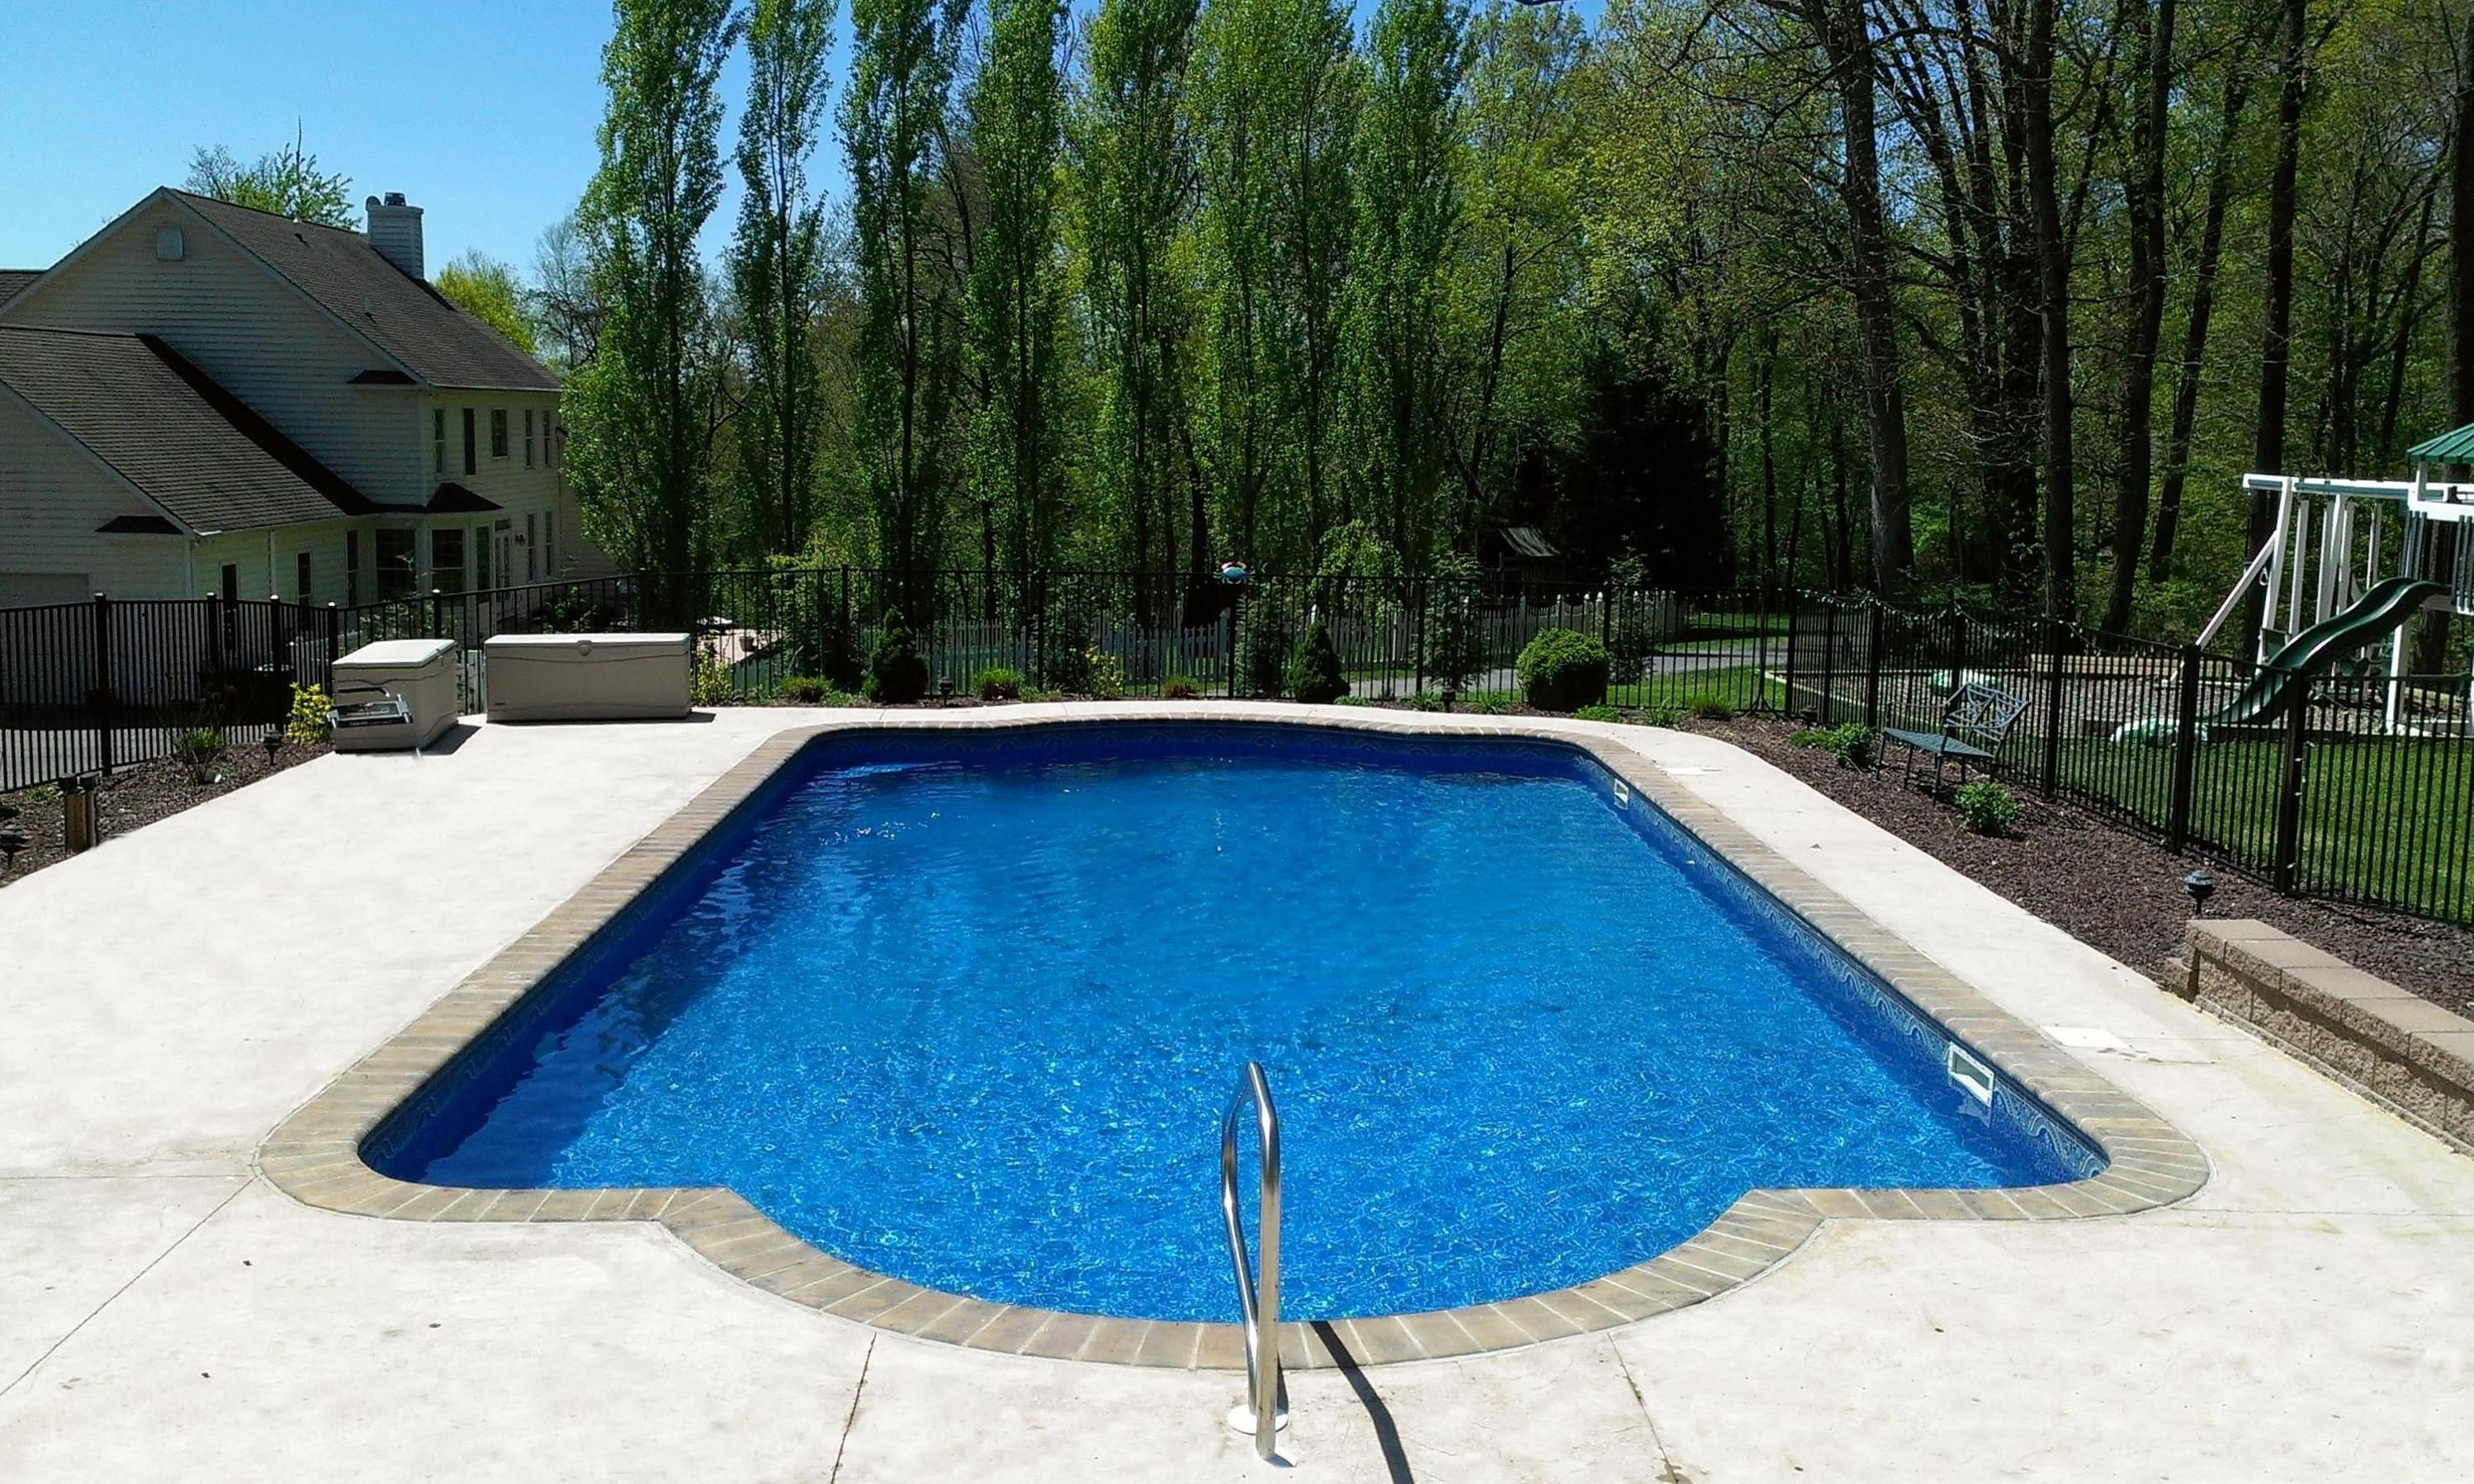 Roman-shaped pool with rounded corners